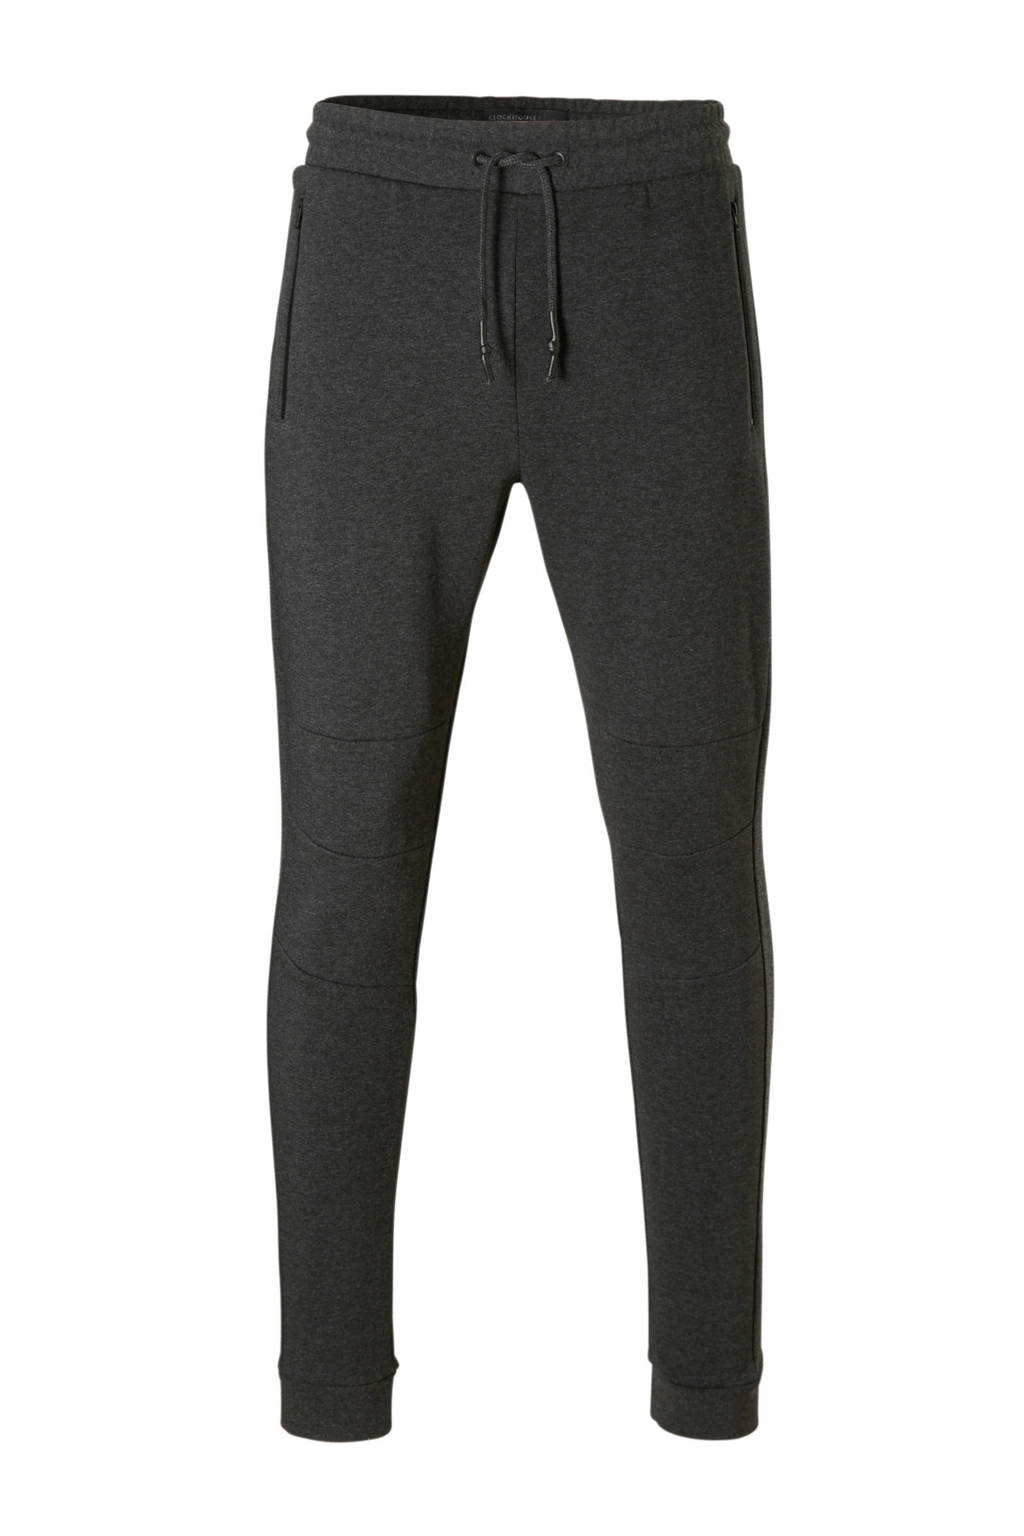 C&A Clockhouse biker joggingbroek, Antraciet